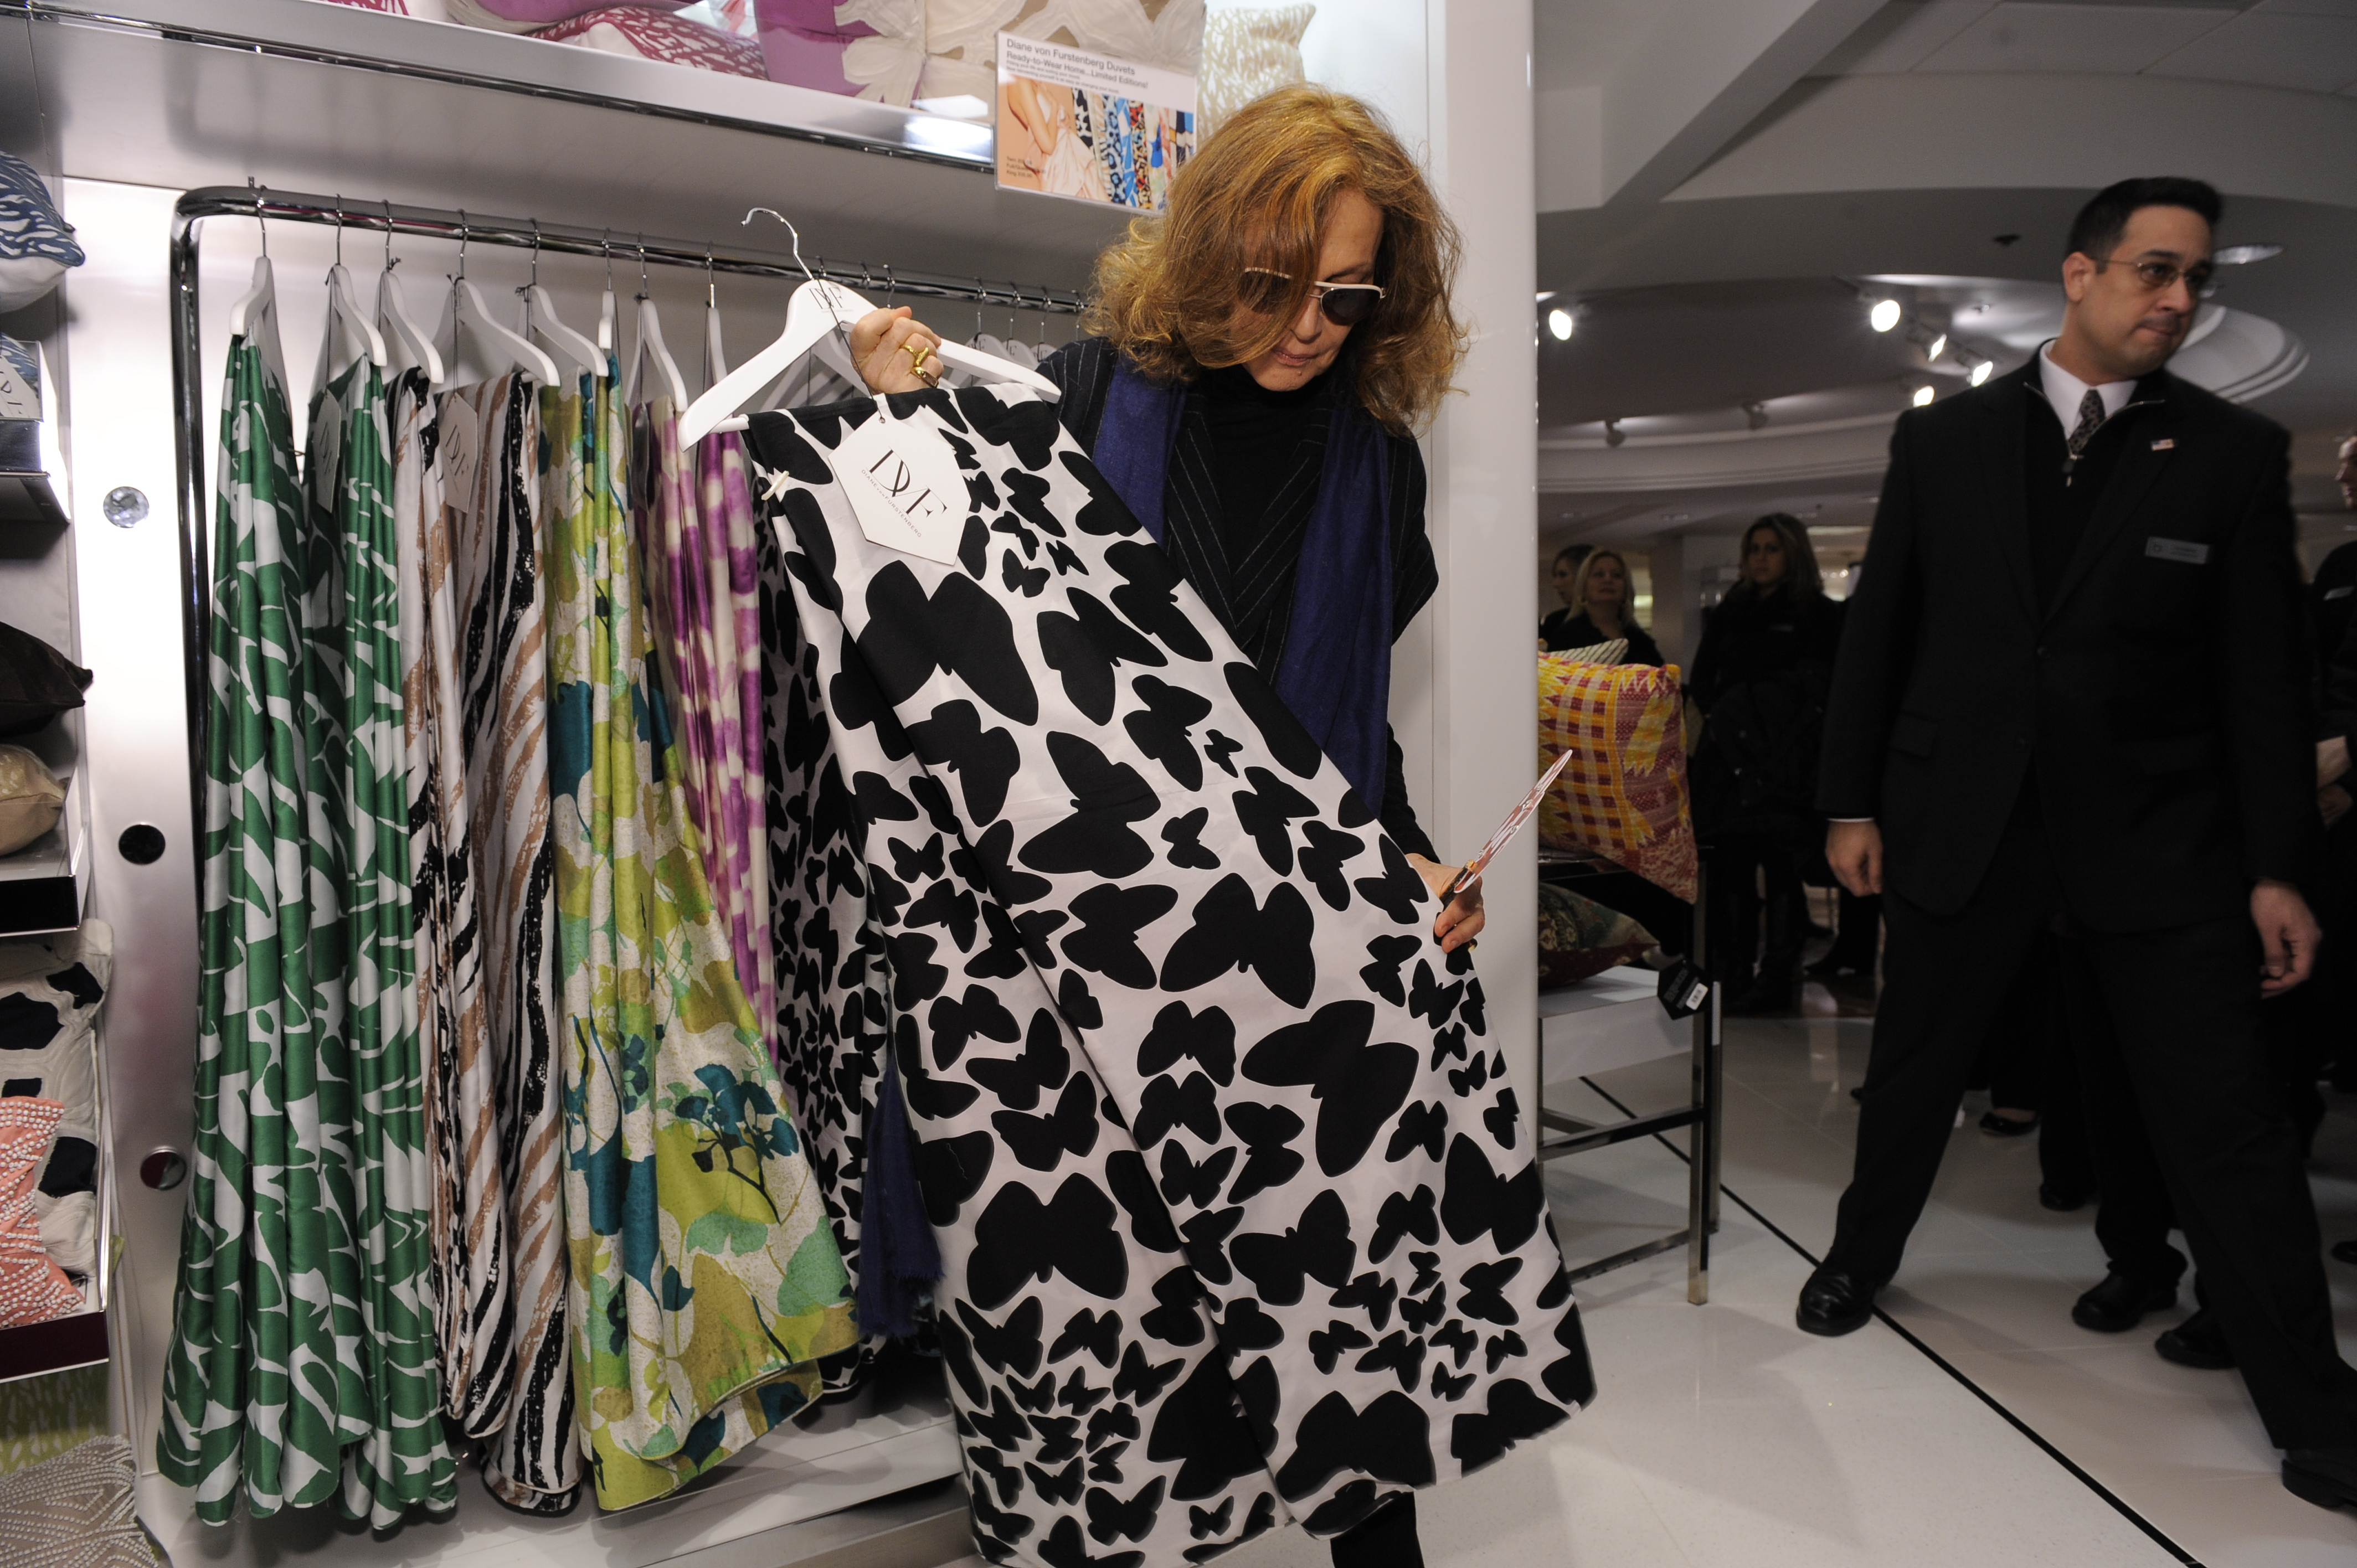 DVF Home makes home debut during Fashion Week